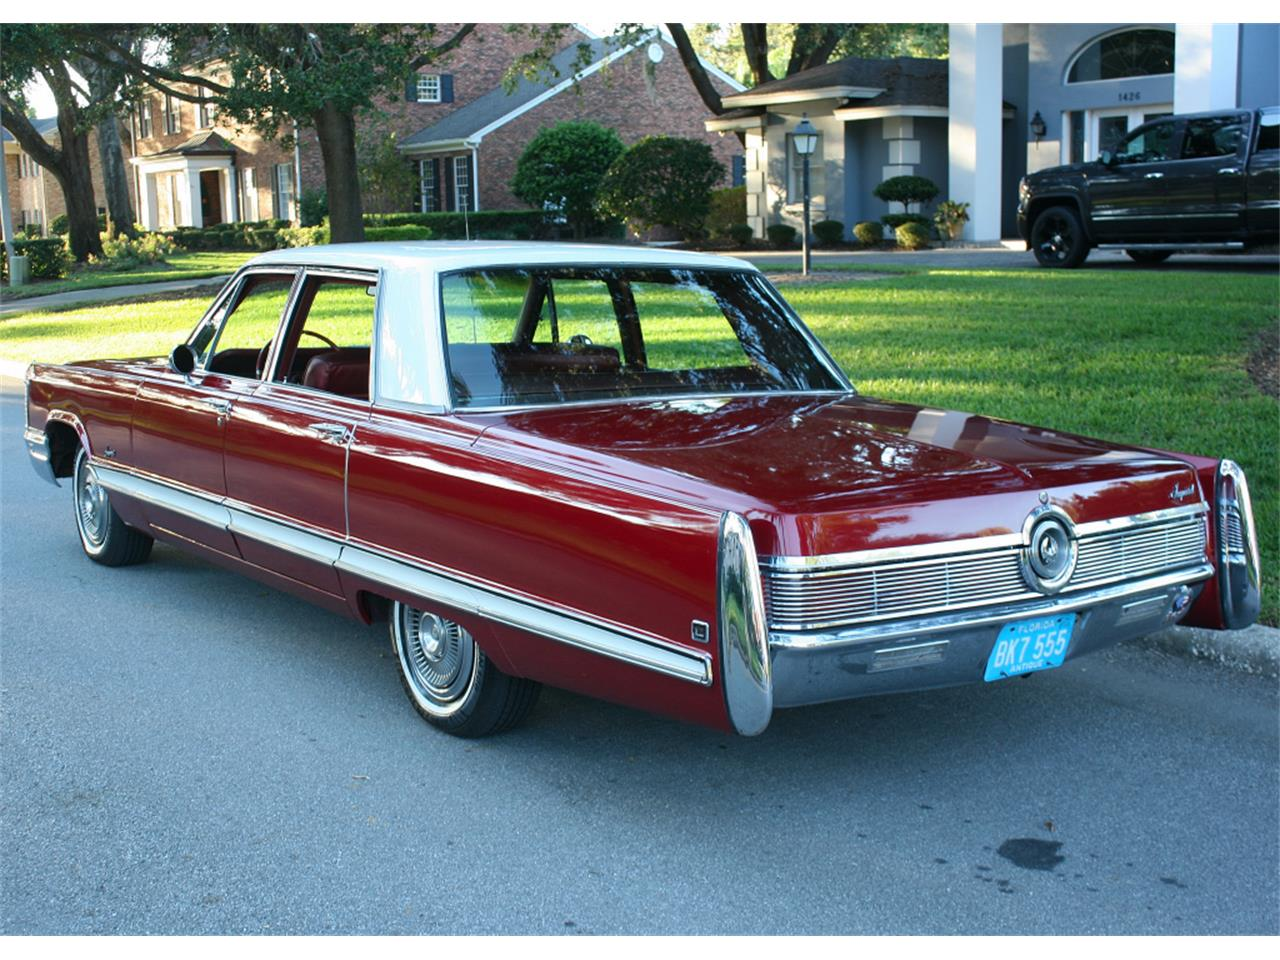 Large Picture of Classic 1968 Chrysler Imperial - $16,500.00 - MA1H